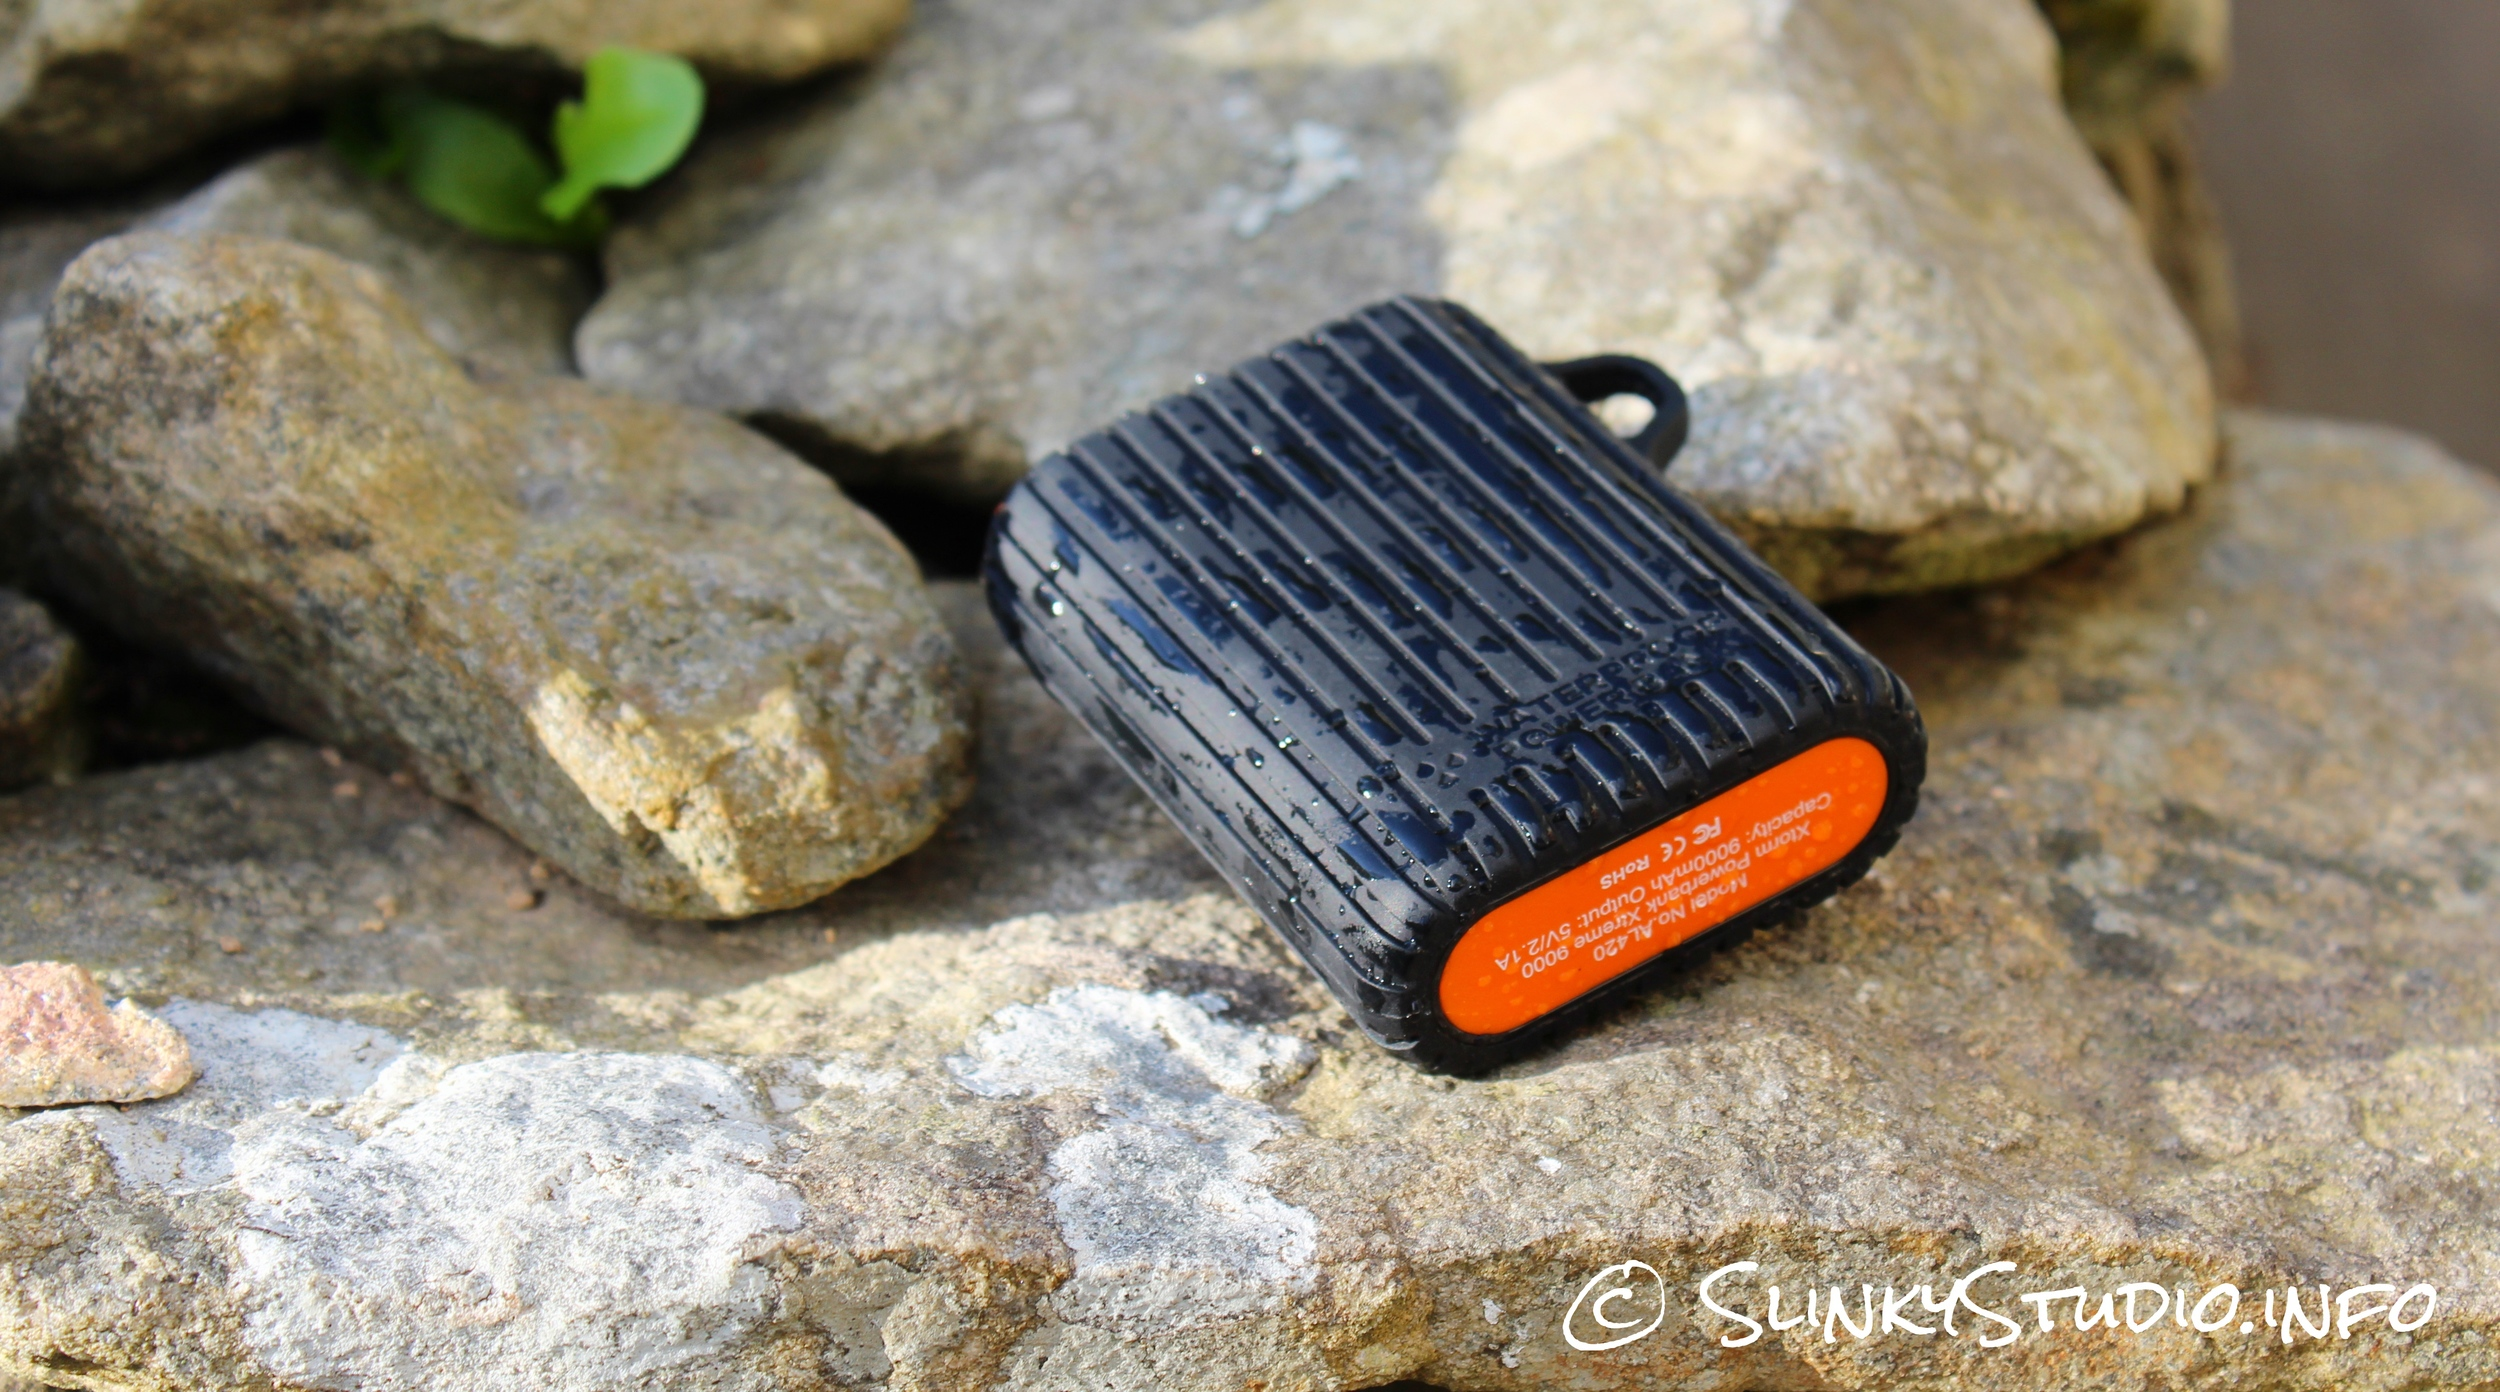 Xtorm Waterproof Power Bank Xtreme 9000 Back View